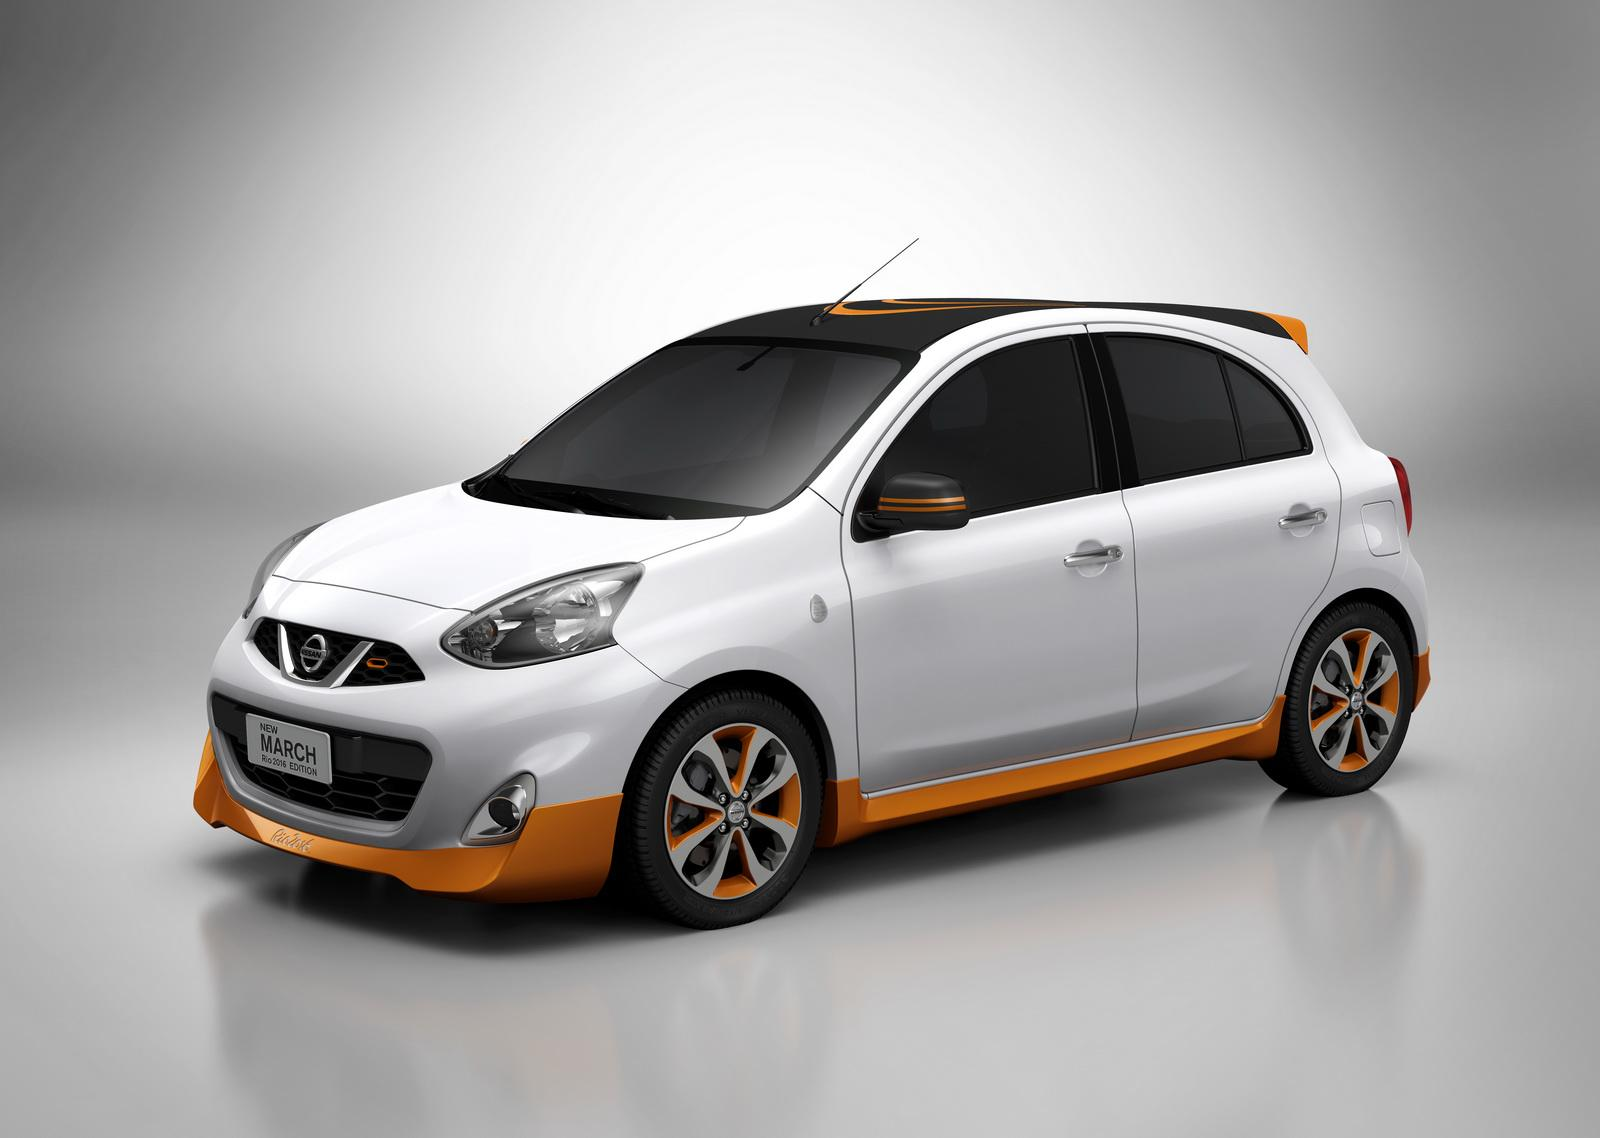 Nissan March Tuning >> Nissan March Rio 2016 Edition Is a Micra with a Gold Body Kit - autoevolution